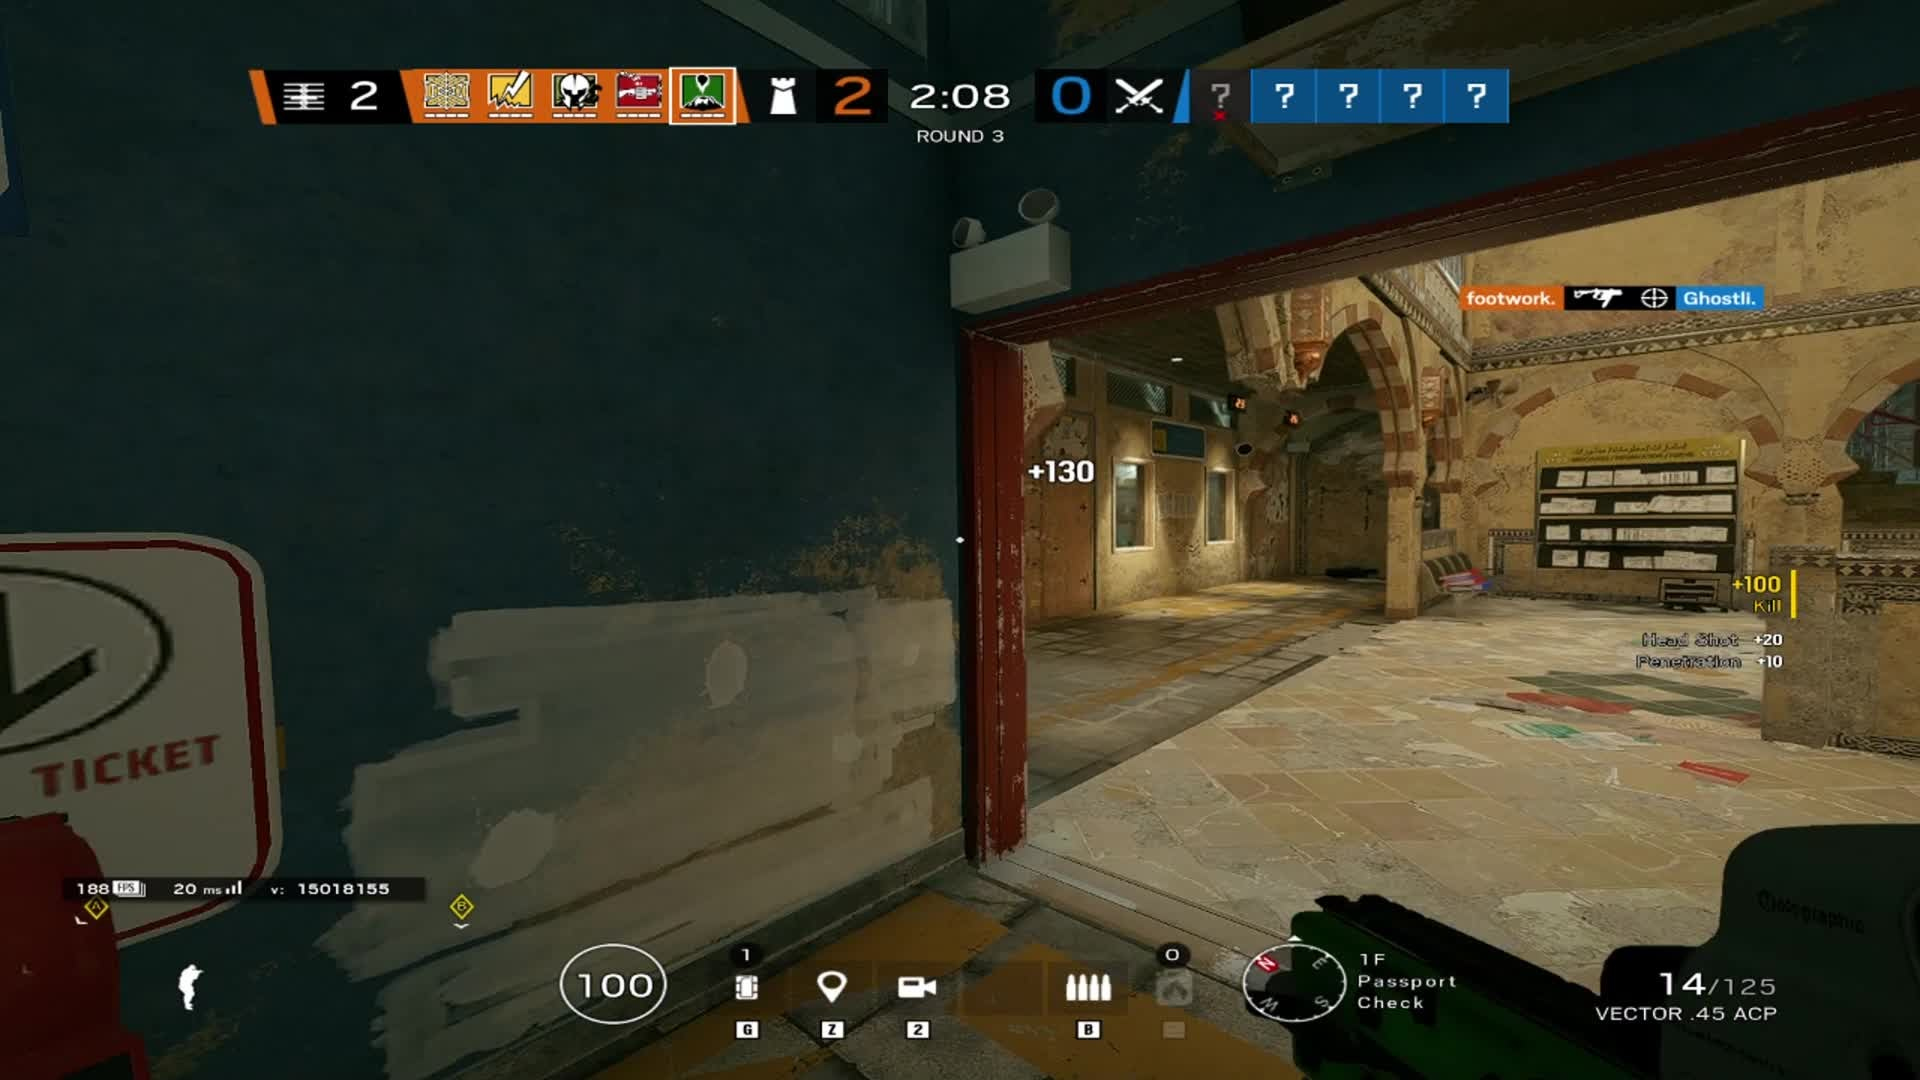 Rainbow Six: General - Nothing but quick flicks out here. video cover image 0